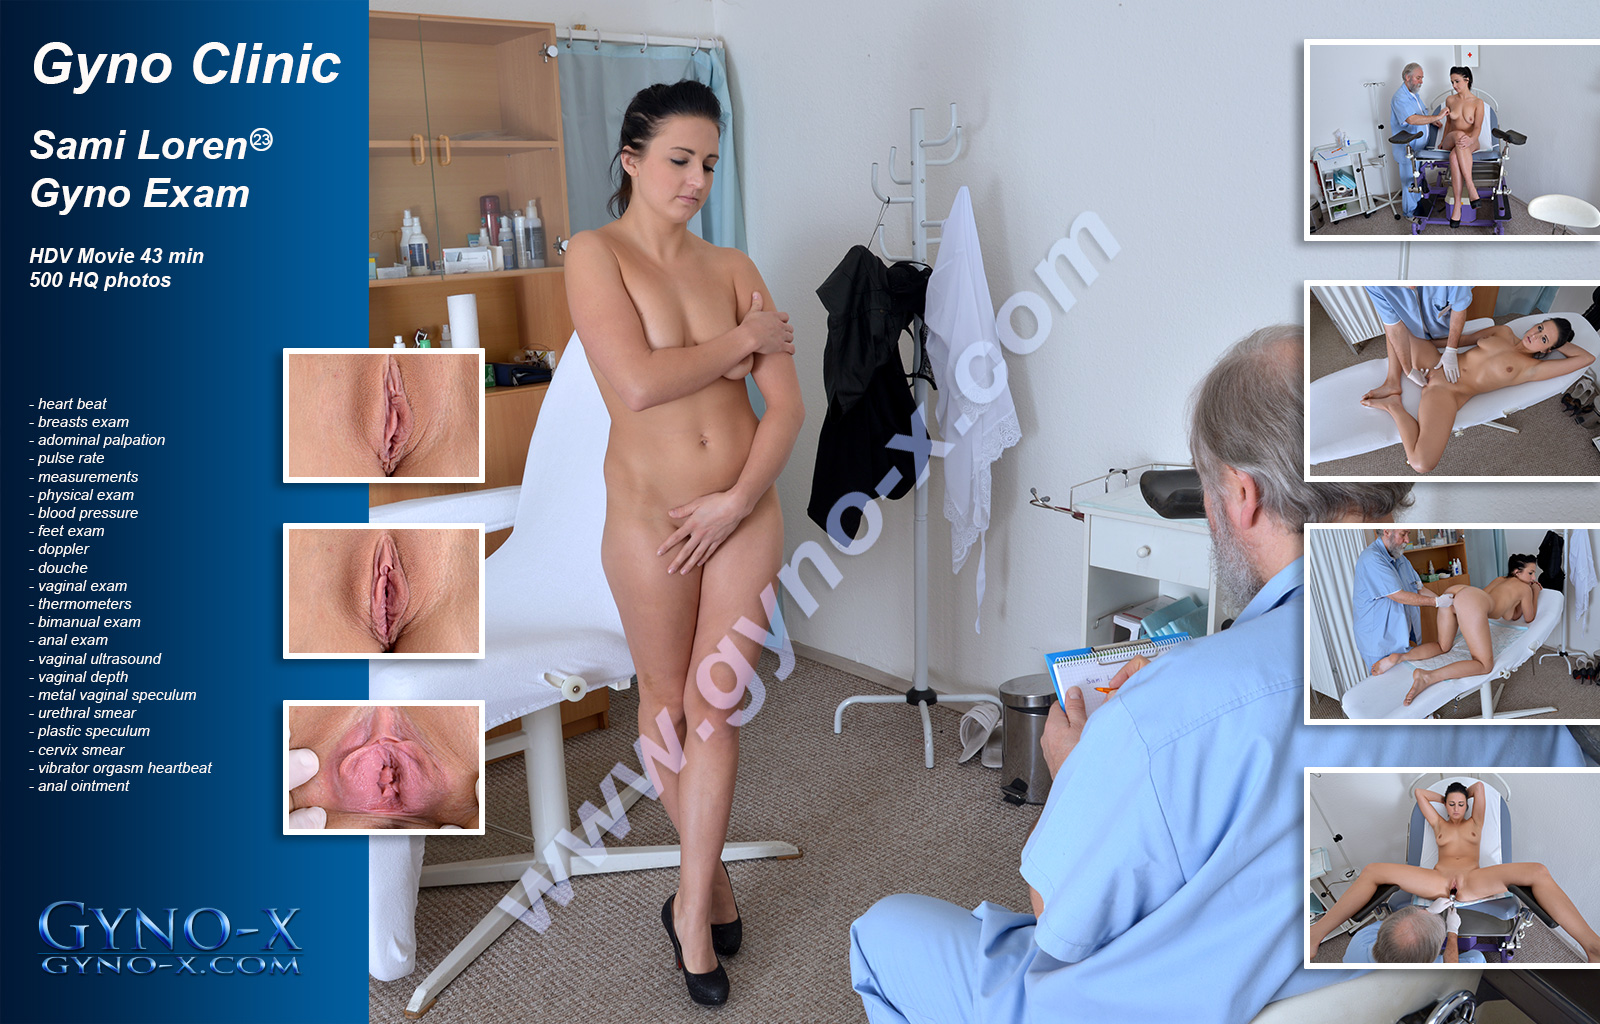 gyno-x preview - adult site related to gyno and medical fetish